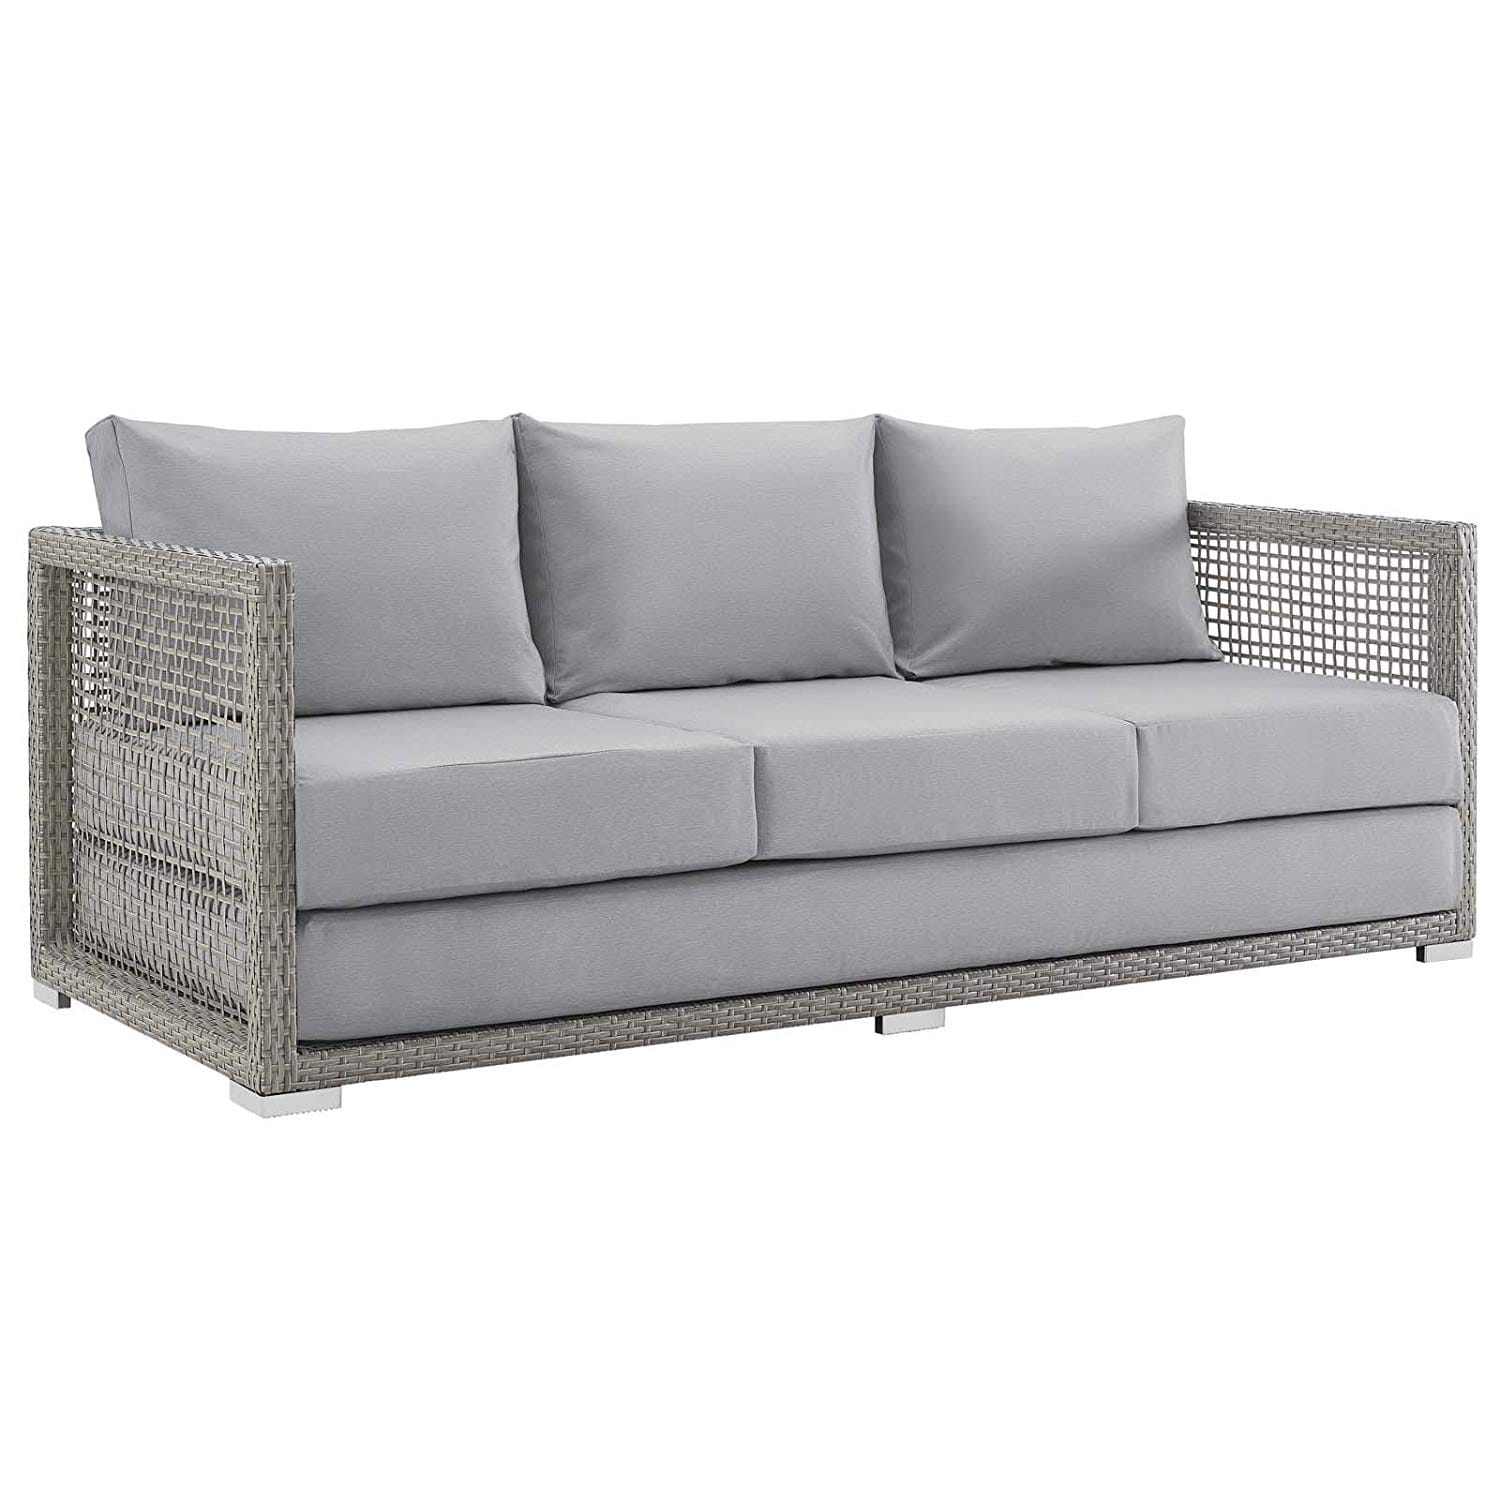 Modway Aura Outdoor Patio Wicker Rattan Sofa Gray